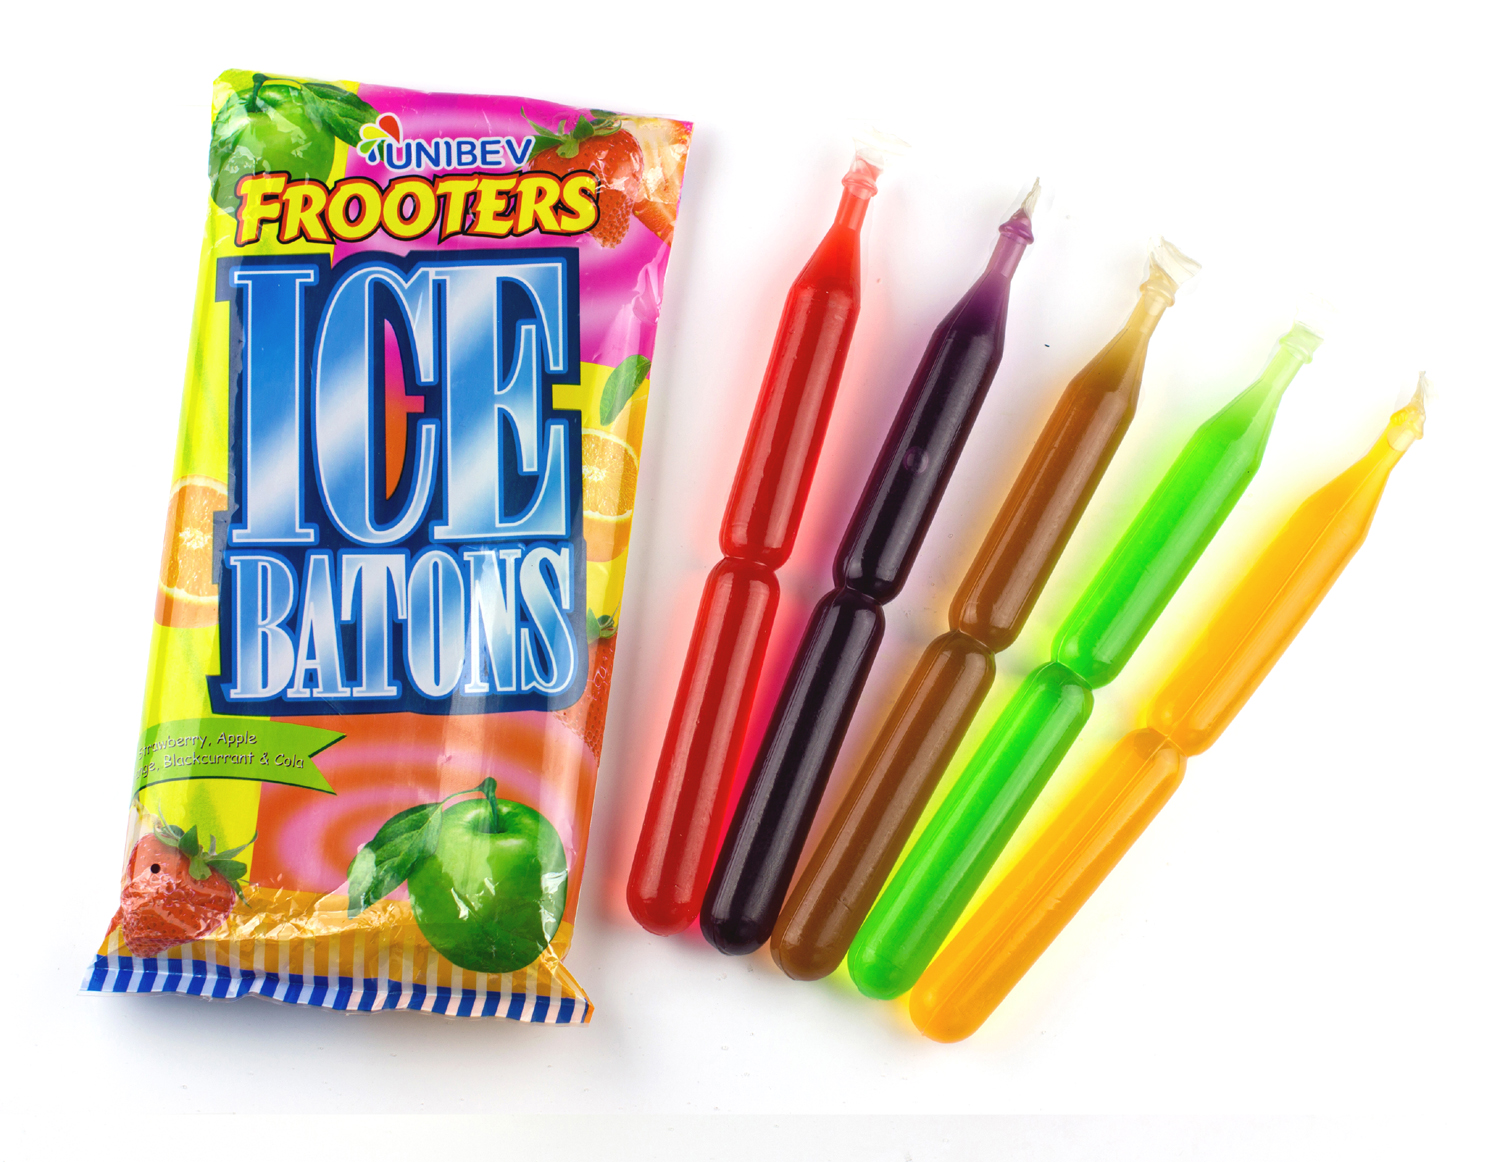 Frooters Ice Batons